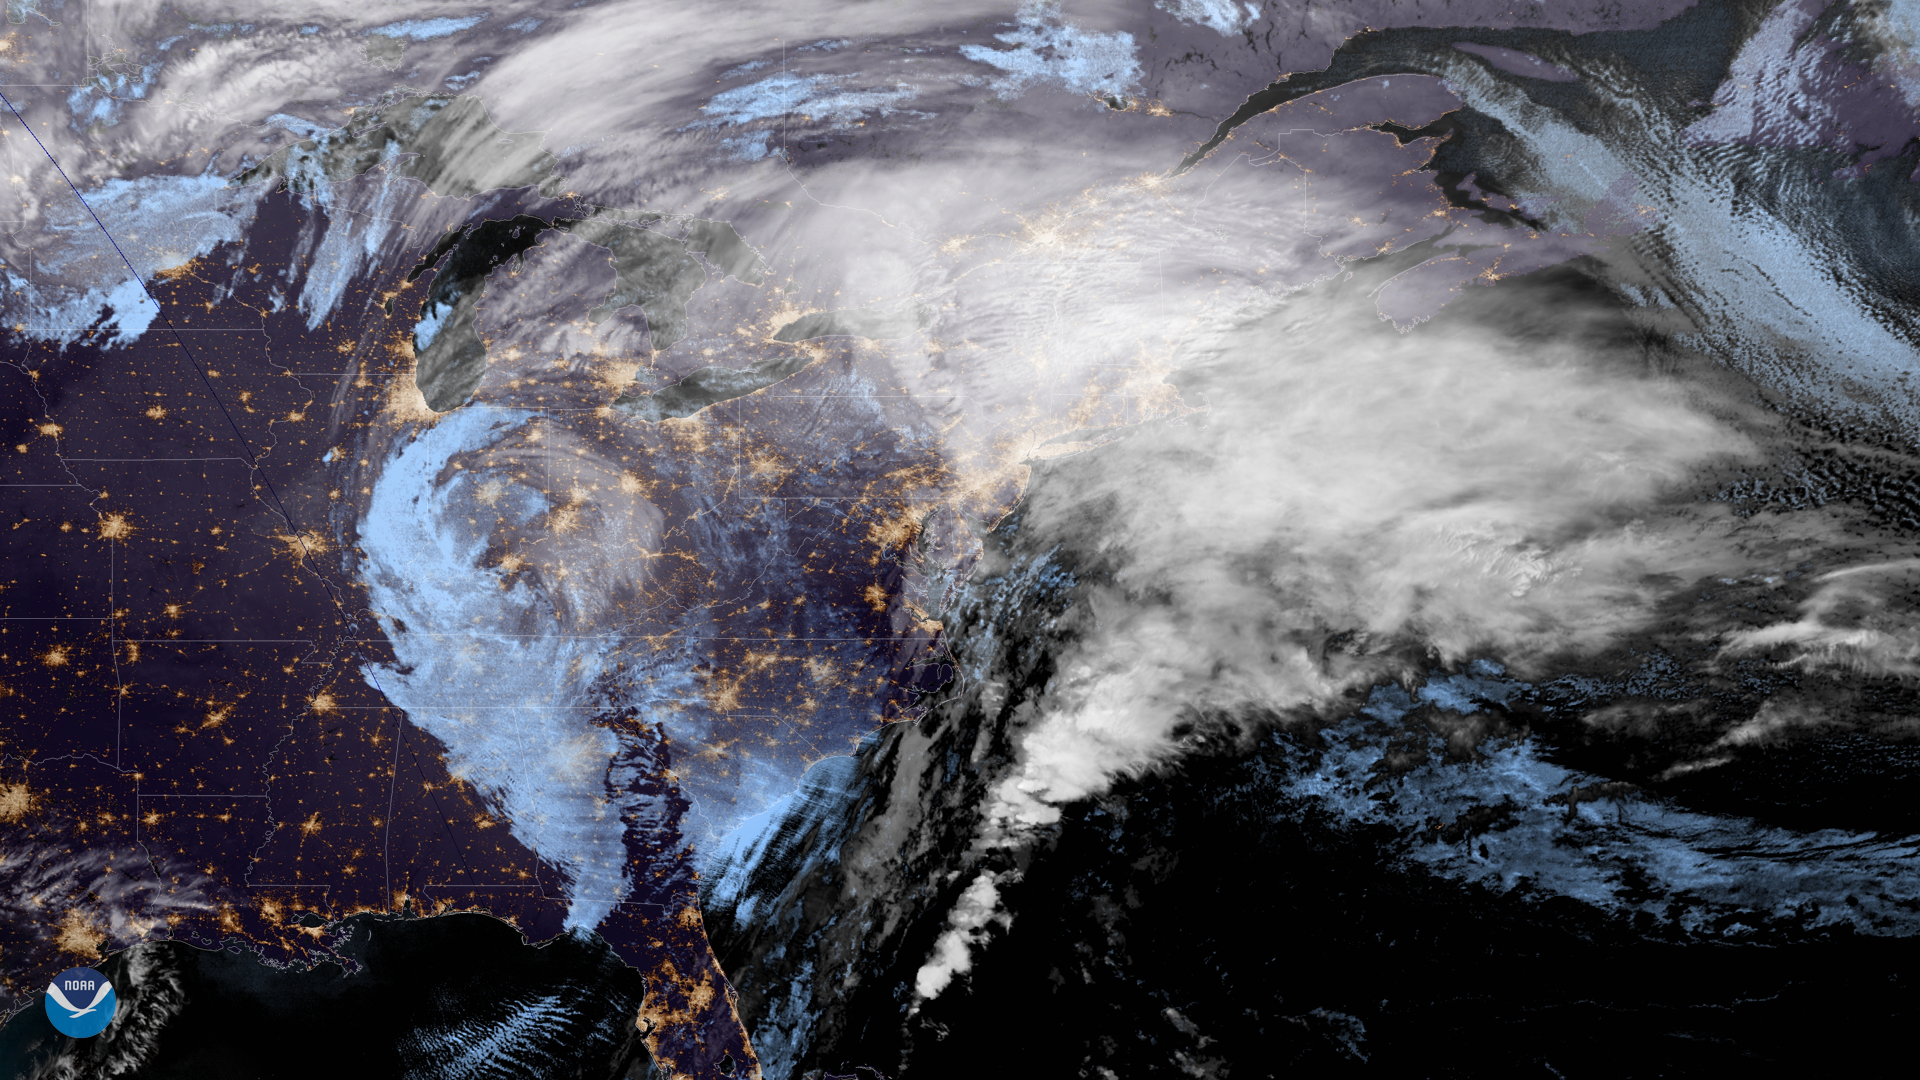 Latest Image of the Day from the NOAA Environmental Visualization Laboratory